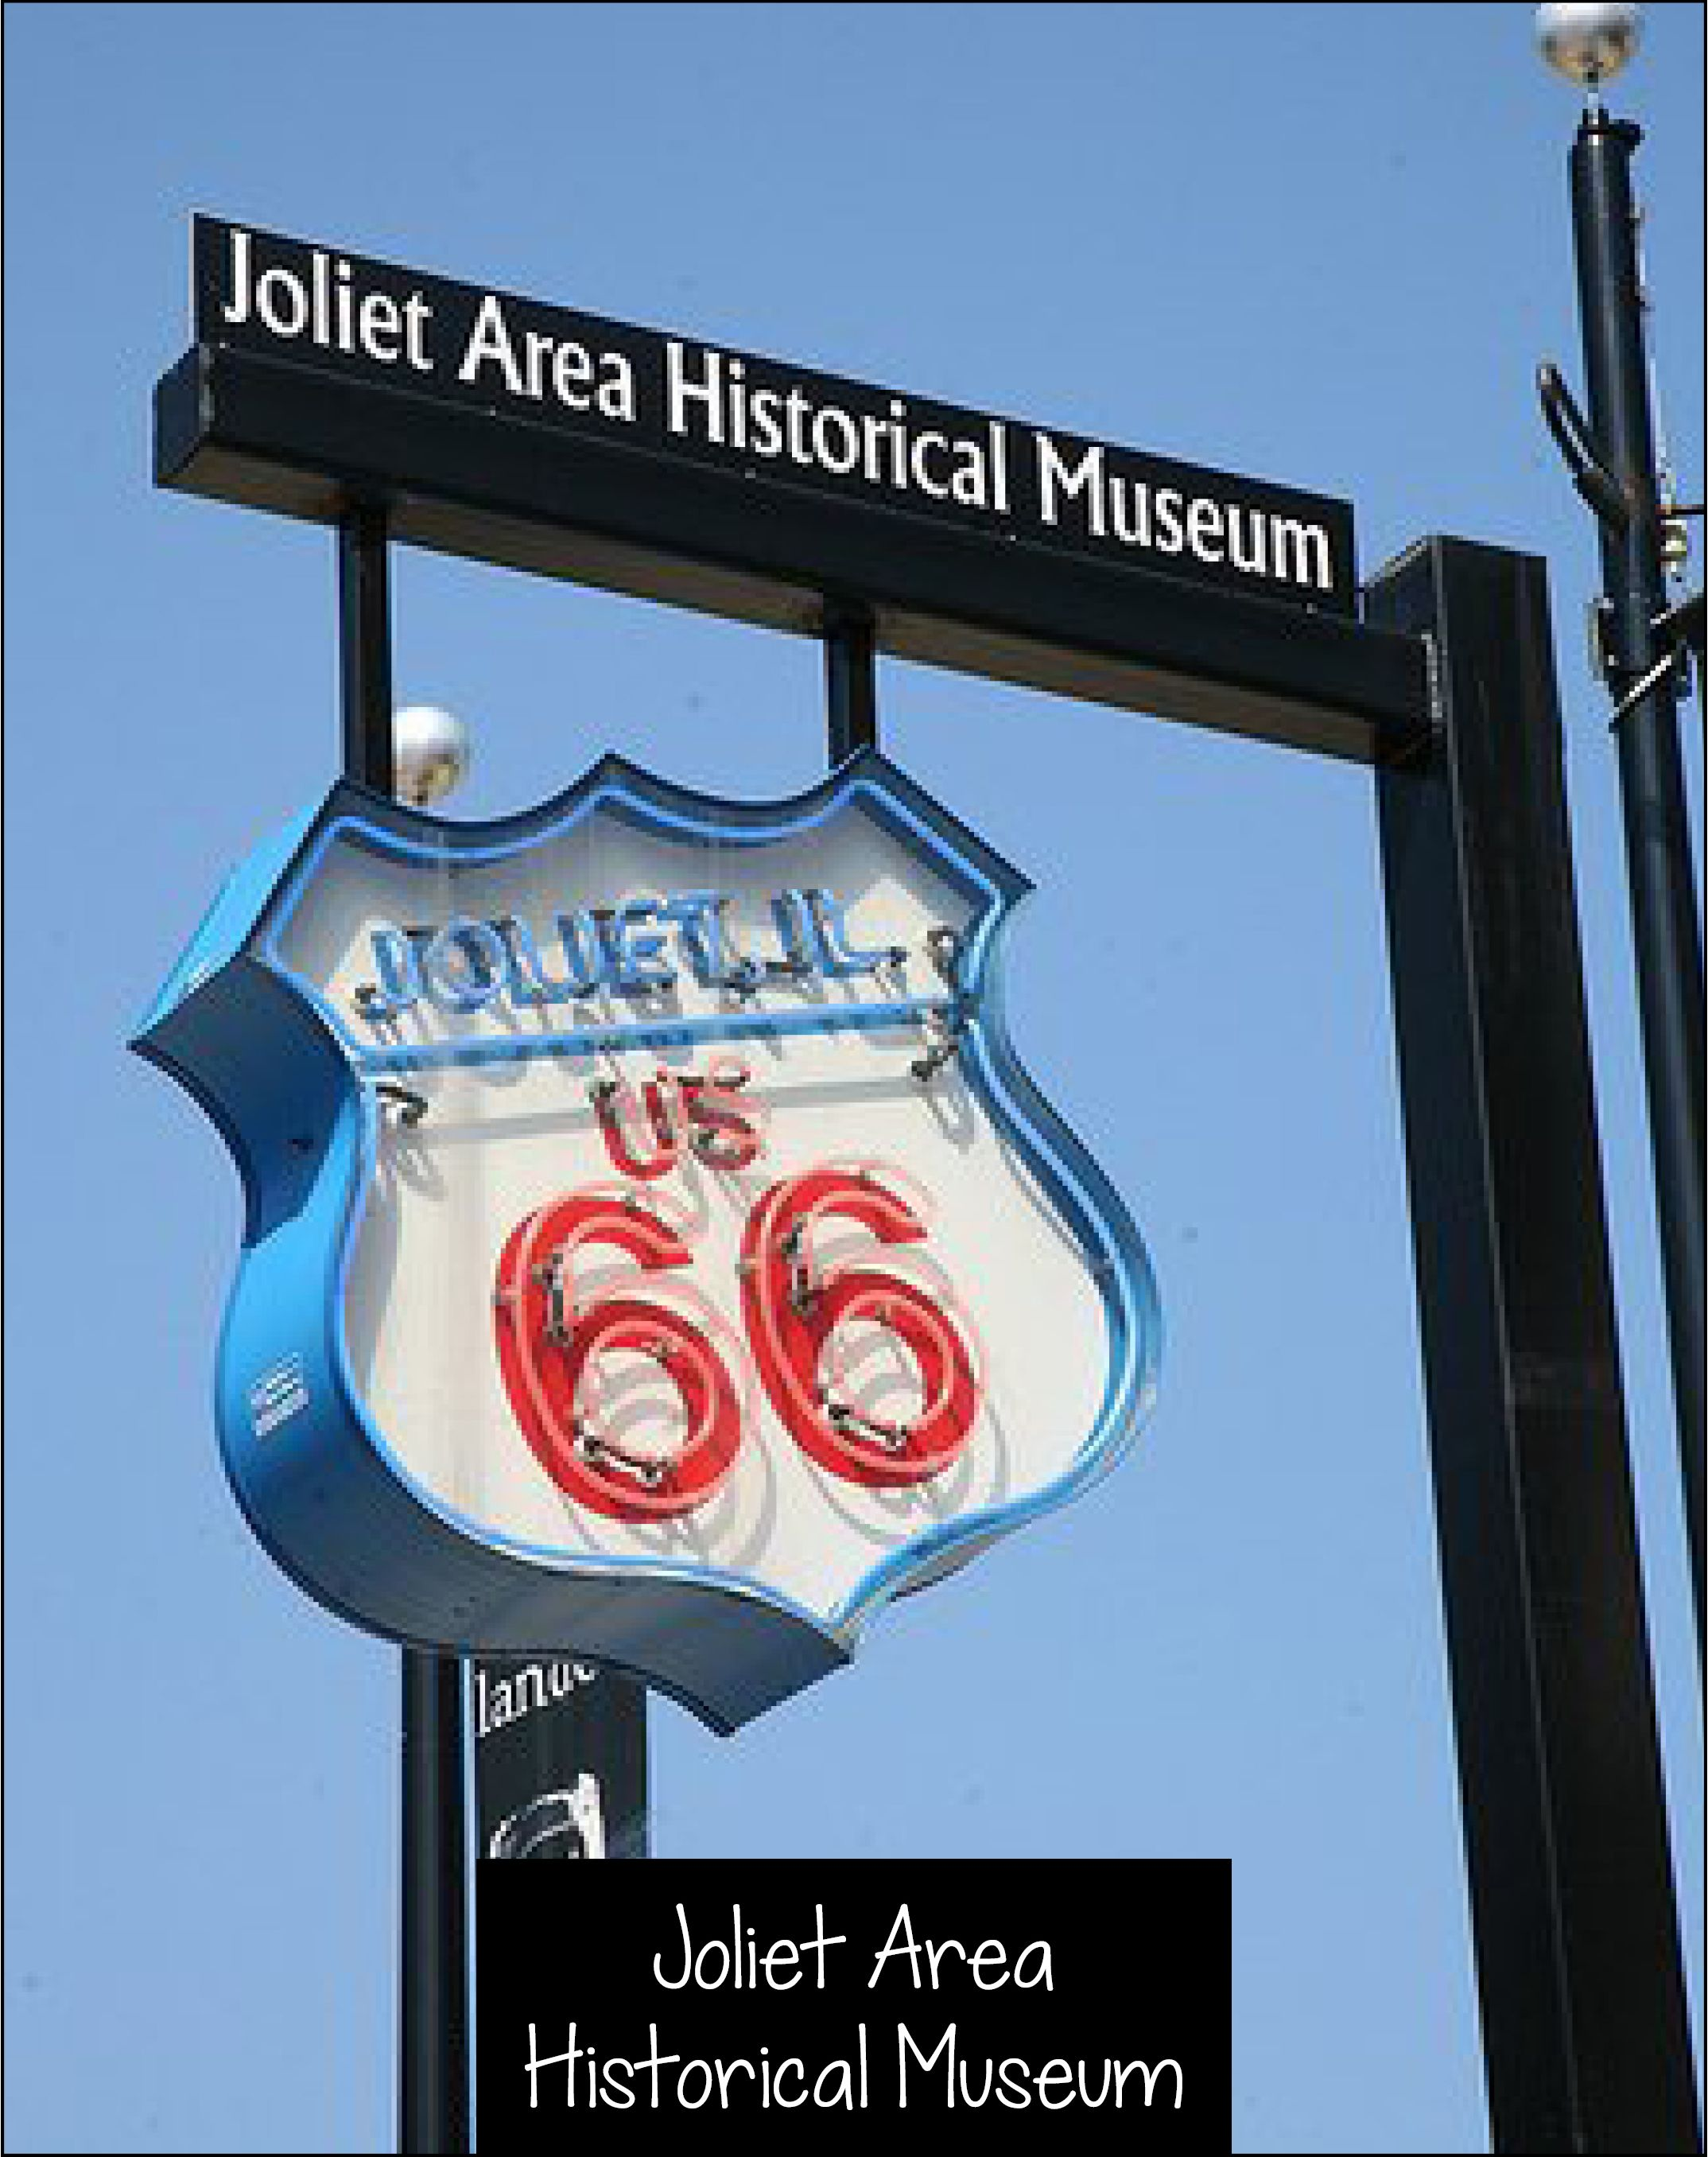 The @JolietMuseum is not only a fascinating introduction to the many stories of the Joliet area and its people, but also a central location for community events such as their summer concert series. Located on historical Route 66, the museum also hosts youth education programs, special exhibits and much more!  #OurCommunity